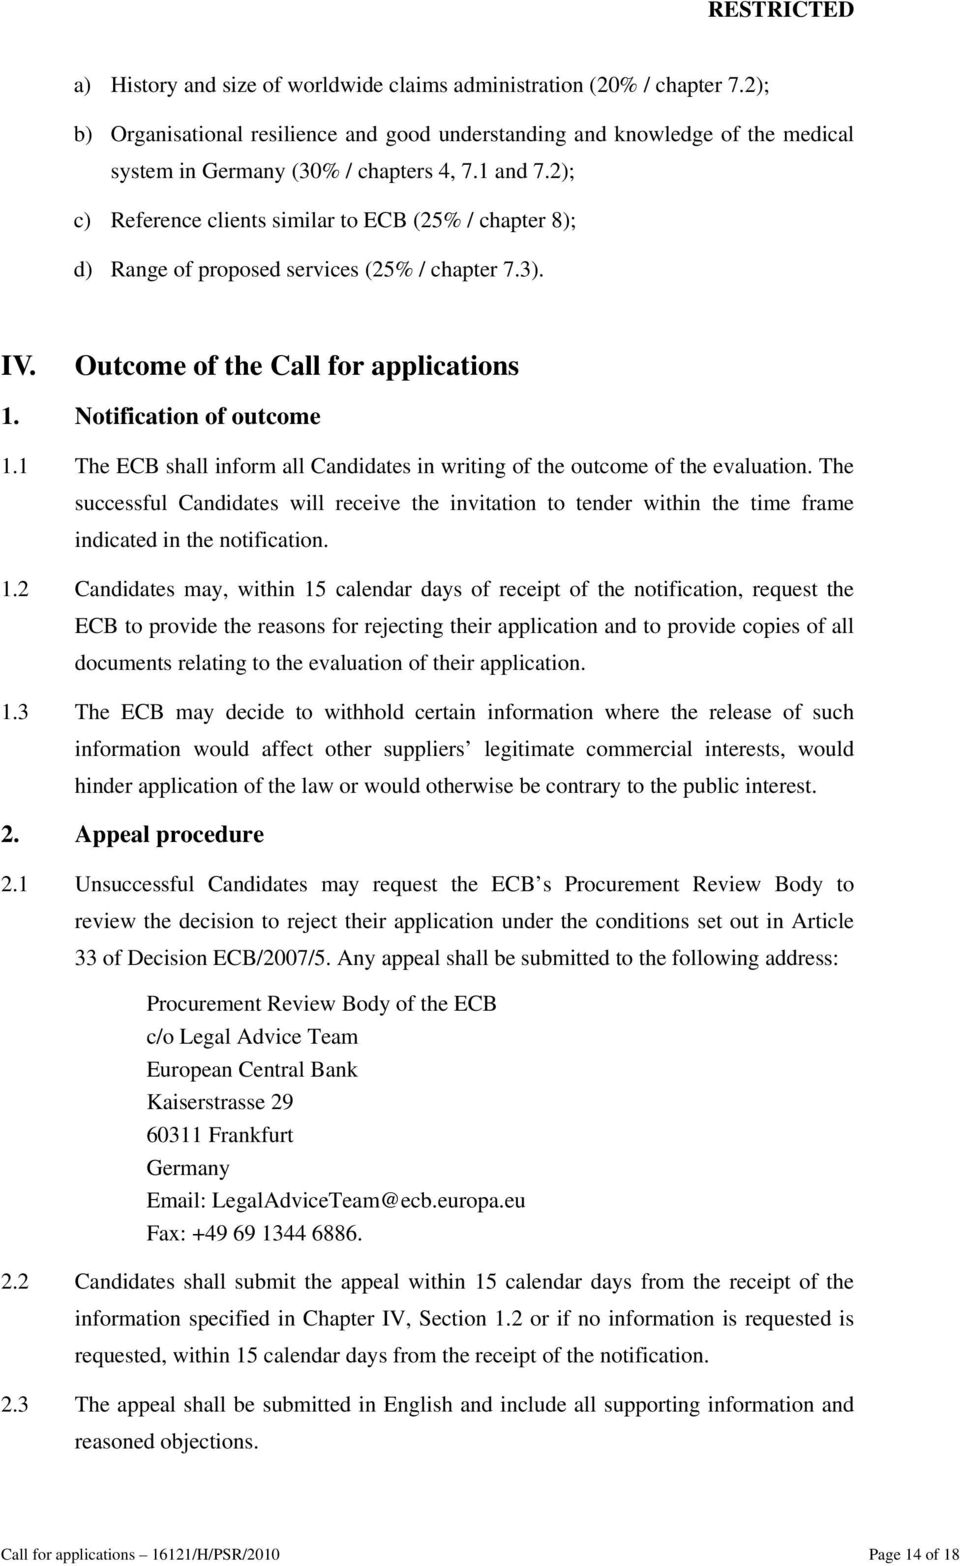 1 The ECB shall inform all Candidates in writing of the outcome of the evaluation. The successful Candidates will receive the invitation to tender within the time frame indicated in the notification.